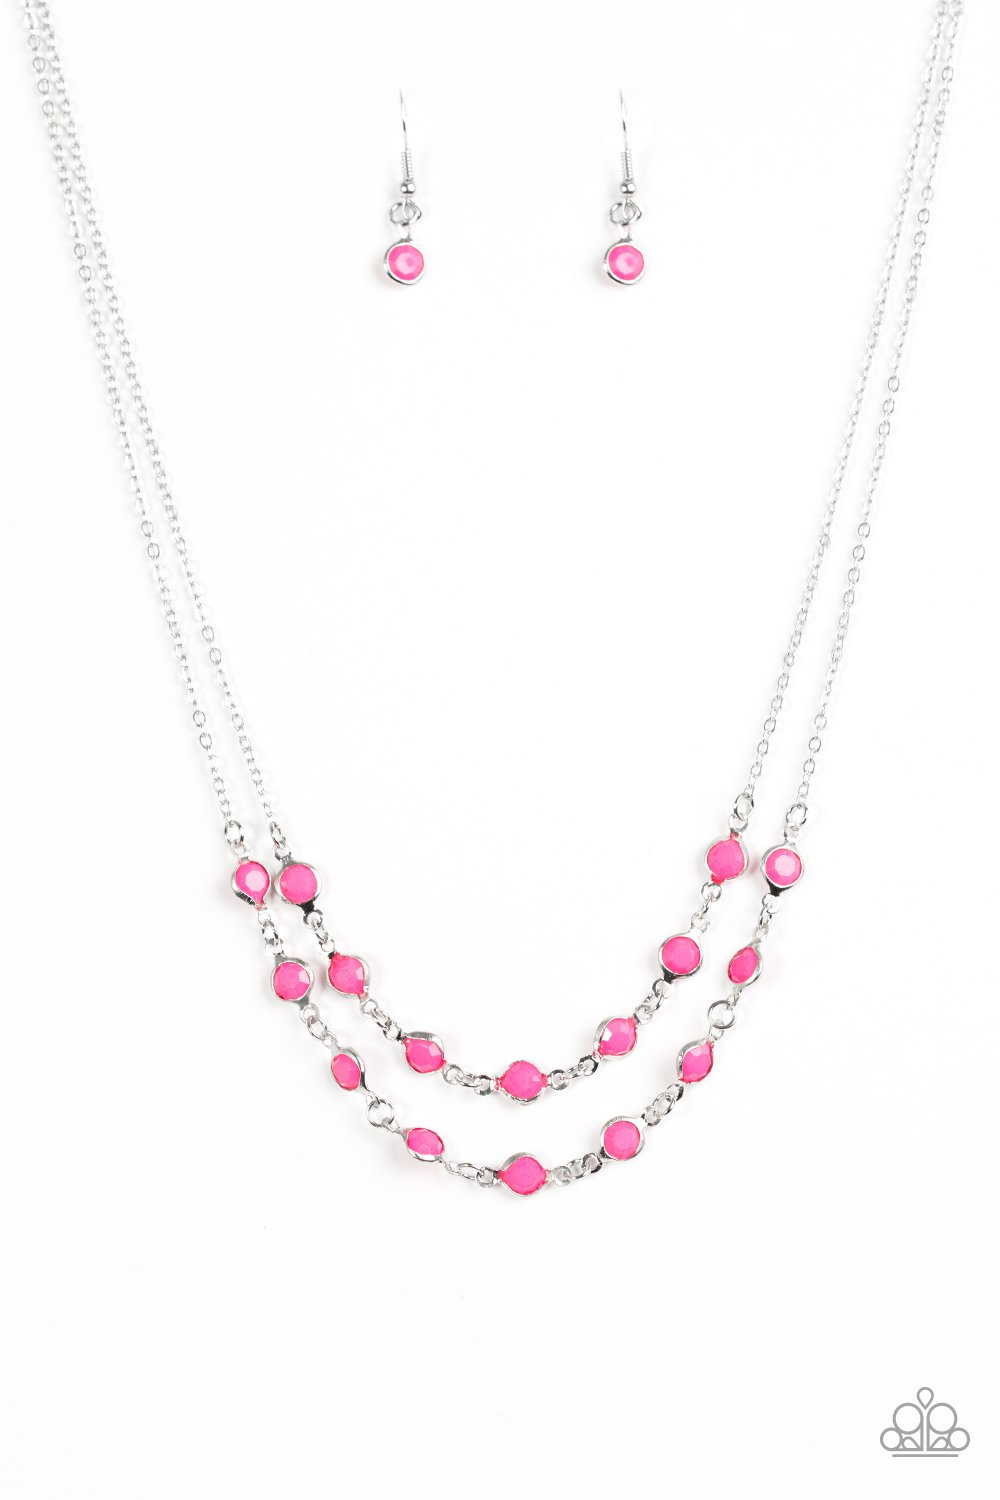 Paparazzi Accessories ~ Summer Girl - Pink